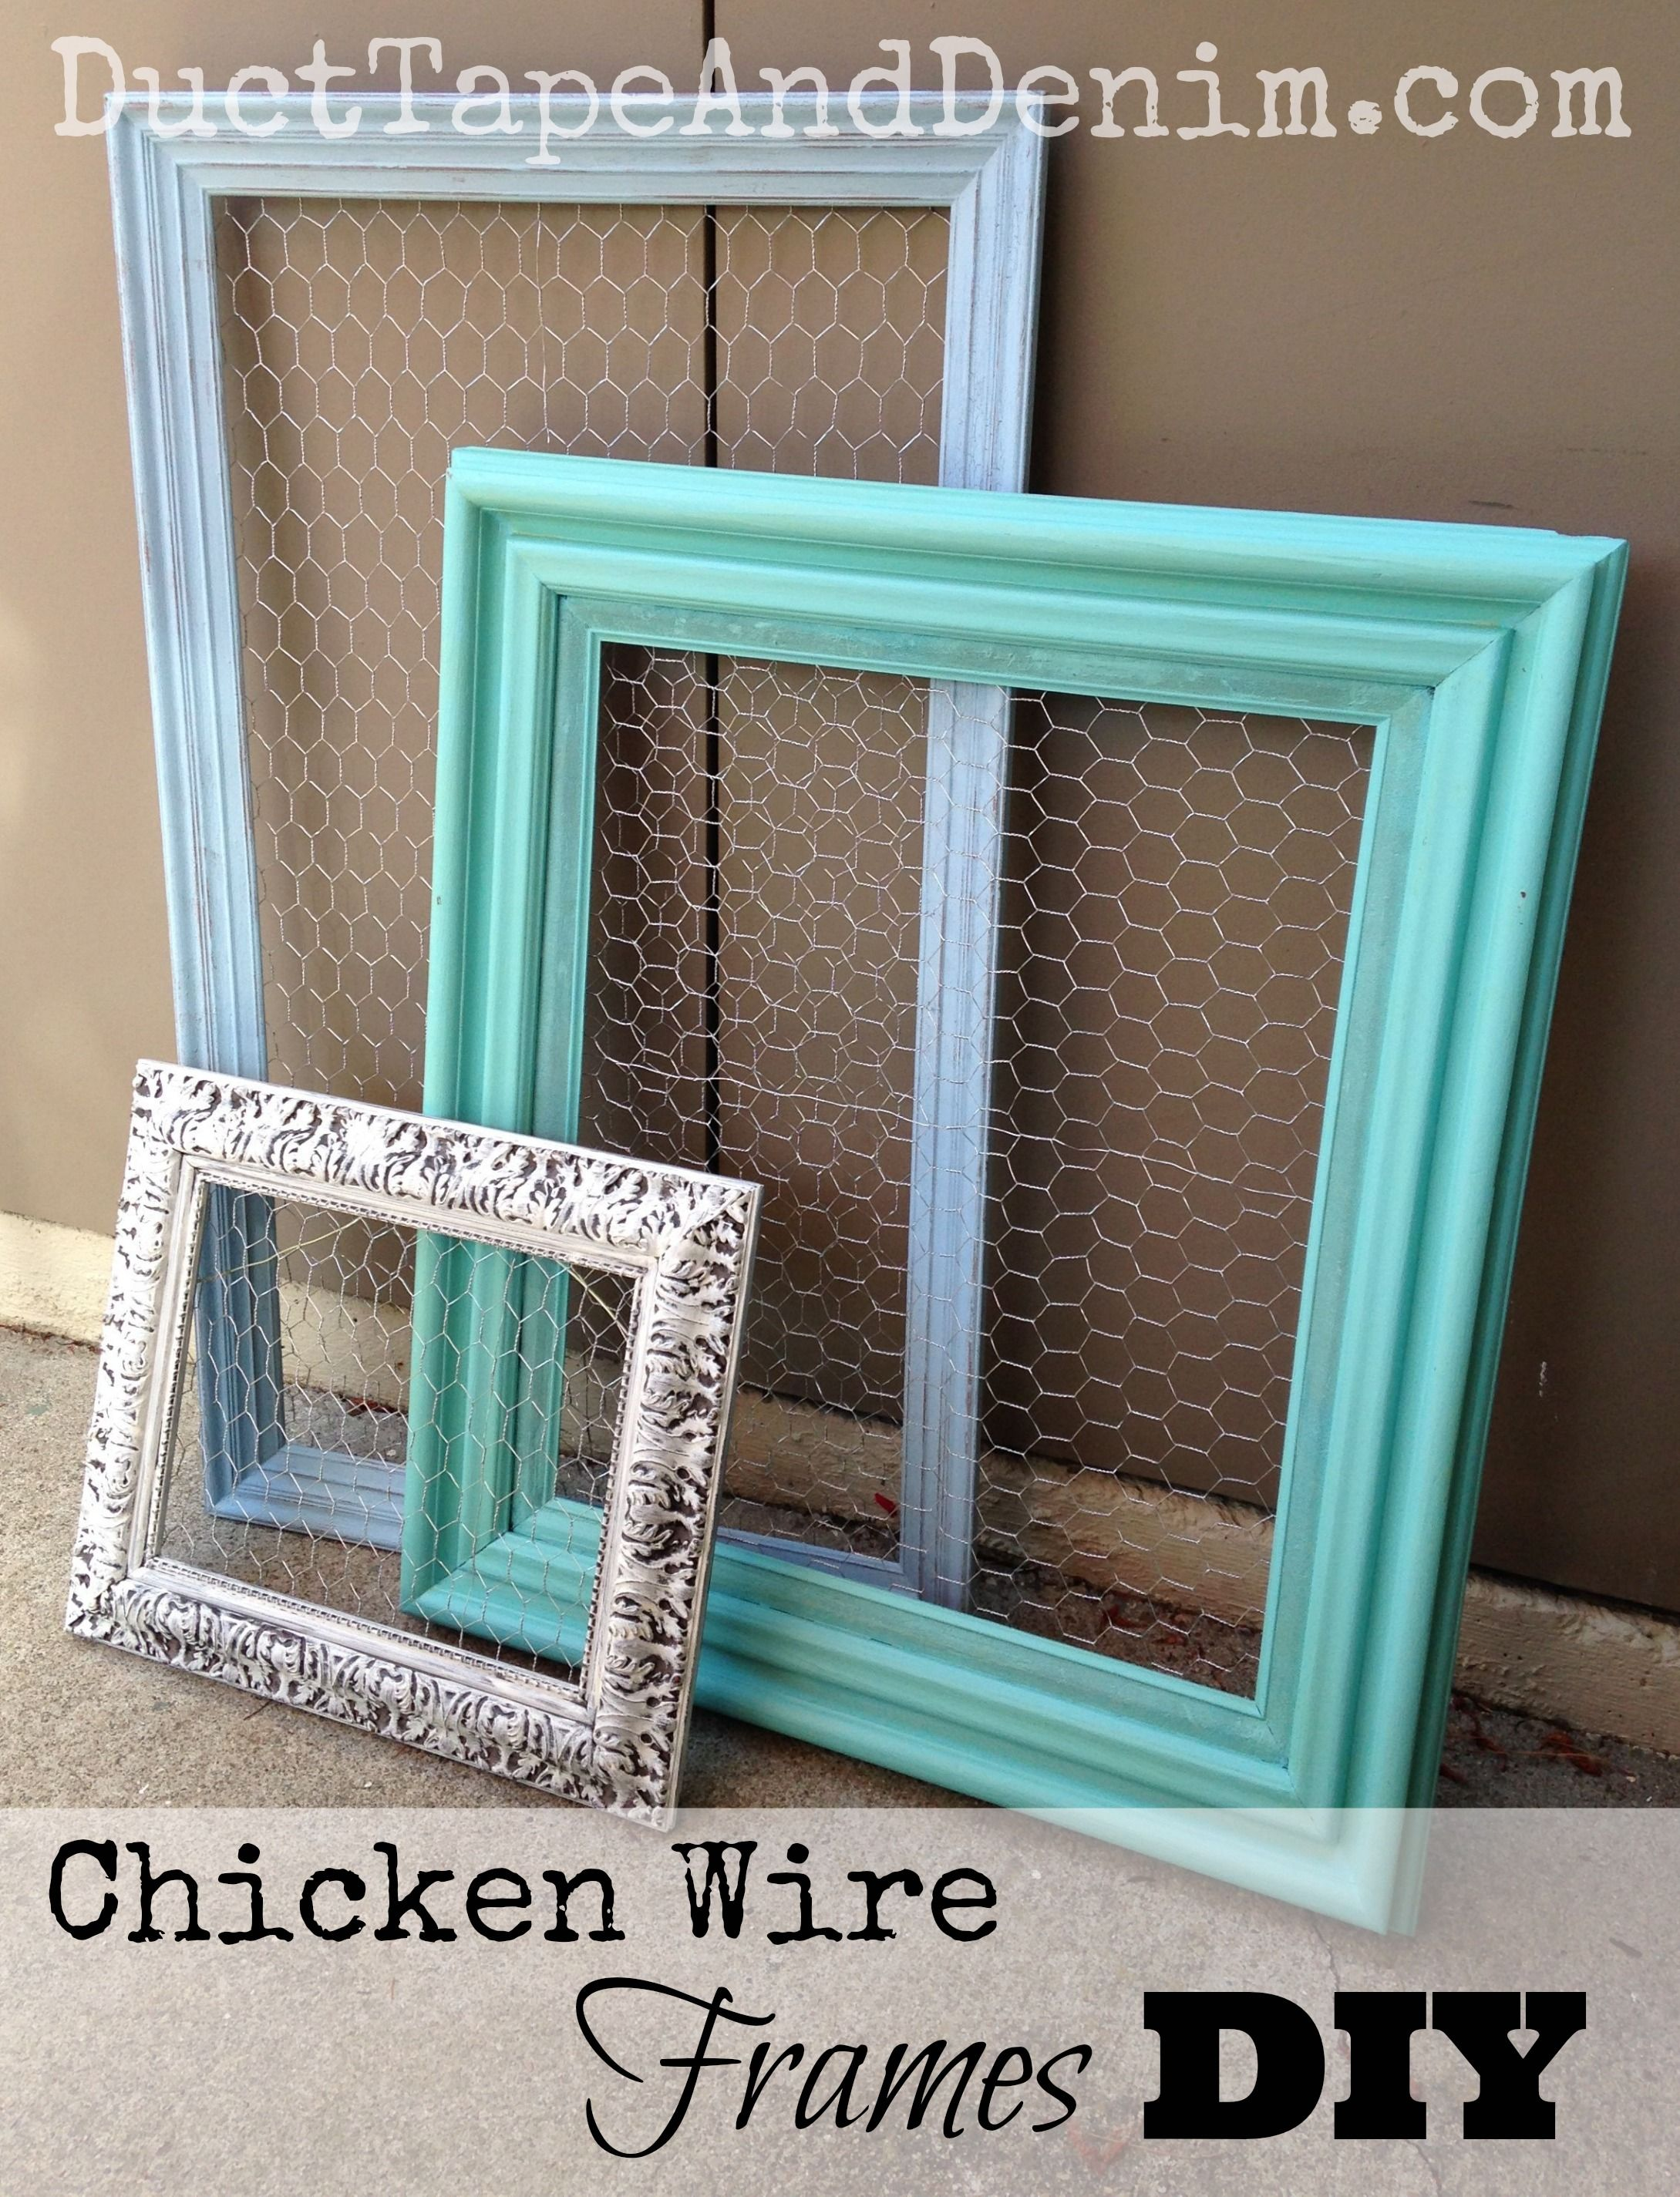 Chicken Wire Frames - DIY Repurposed Thrift Store Find | Exibidores ...